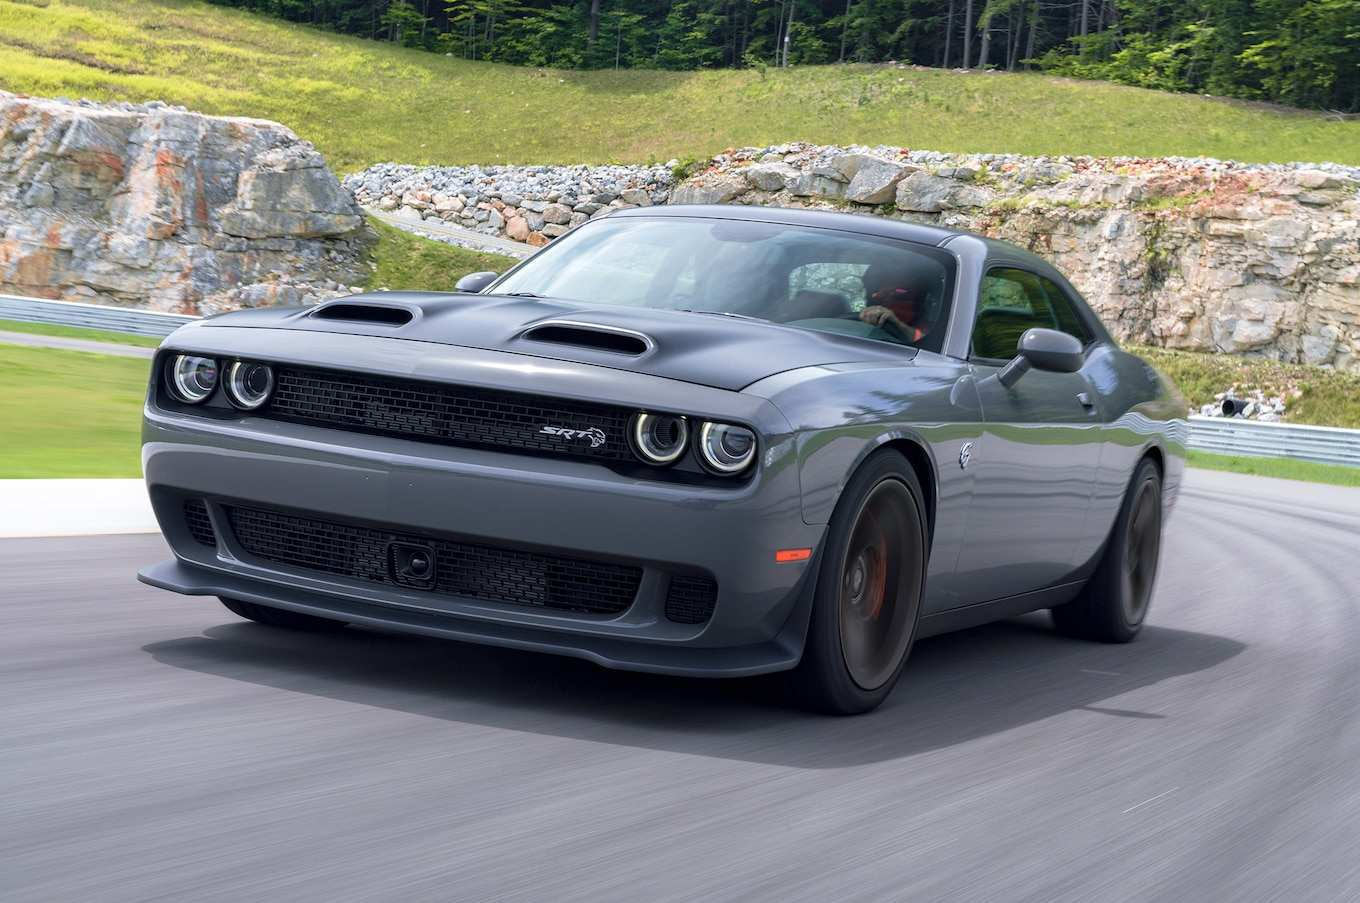 67 Great Best 2019 Dodge Barracuda Specs Release Performance and New Engine by Best 2019 Dodge Barracuda Specs Release